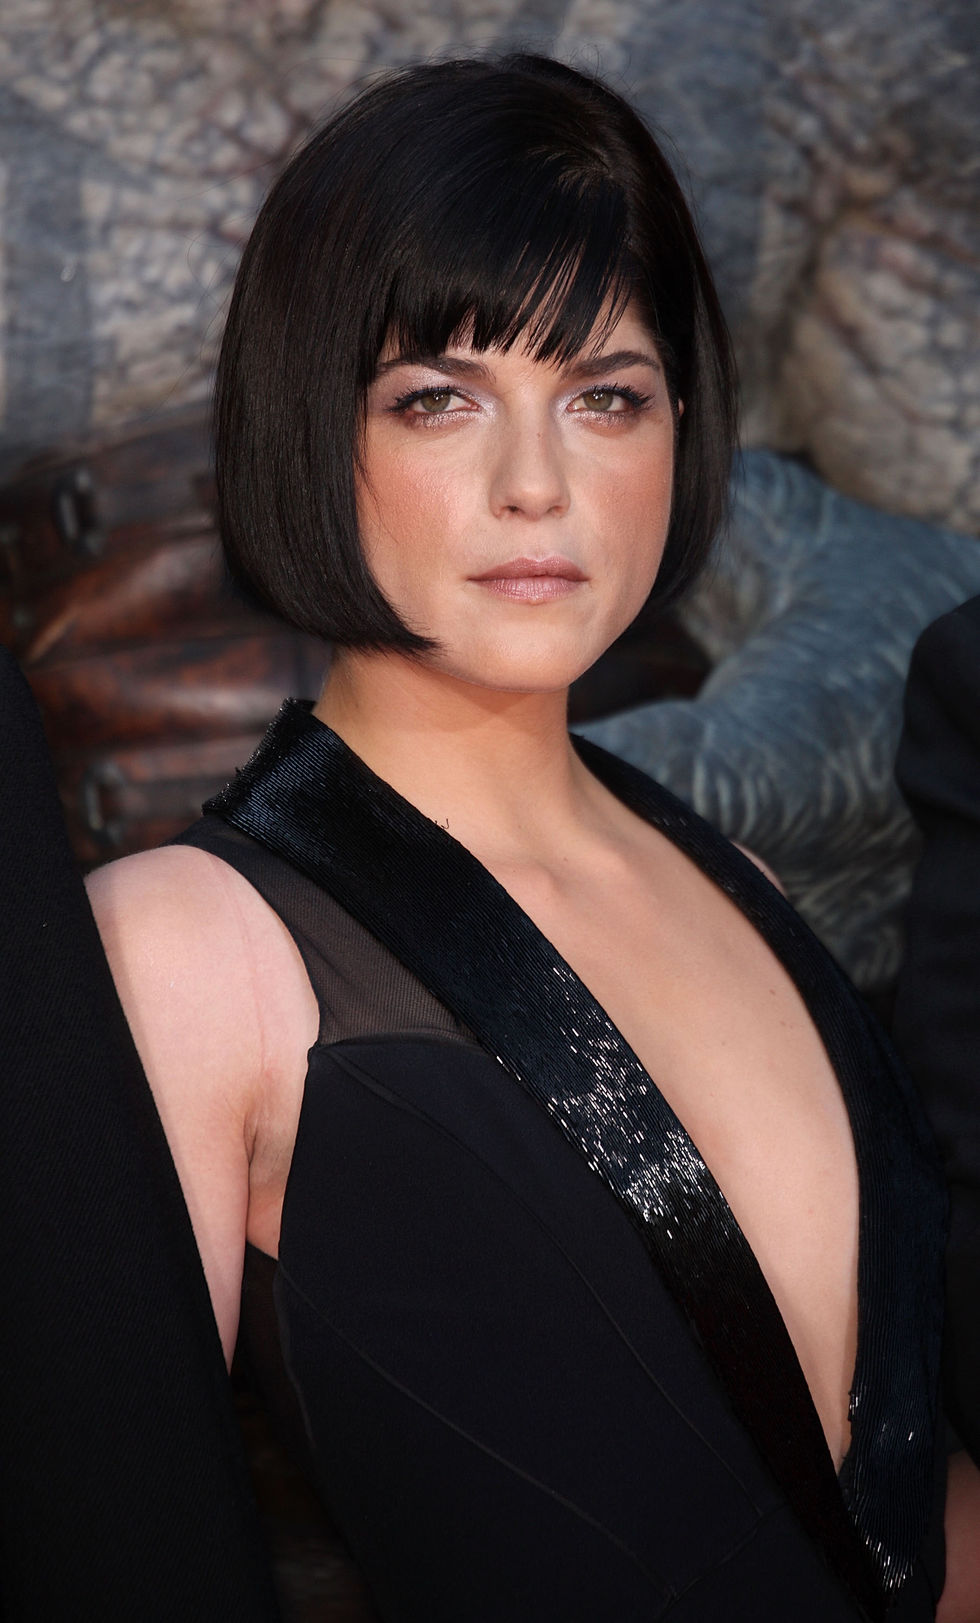 selma-blair-hellboy-ii-the-golden-army-premiere-in-los-angeles-01